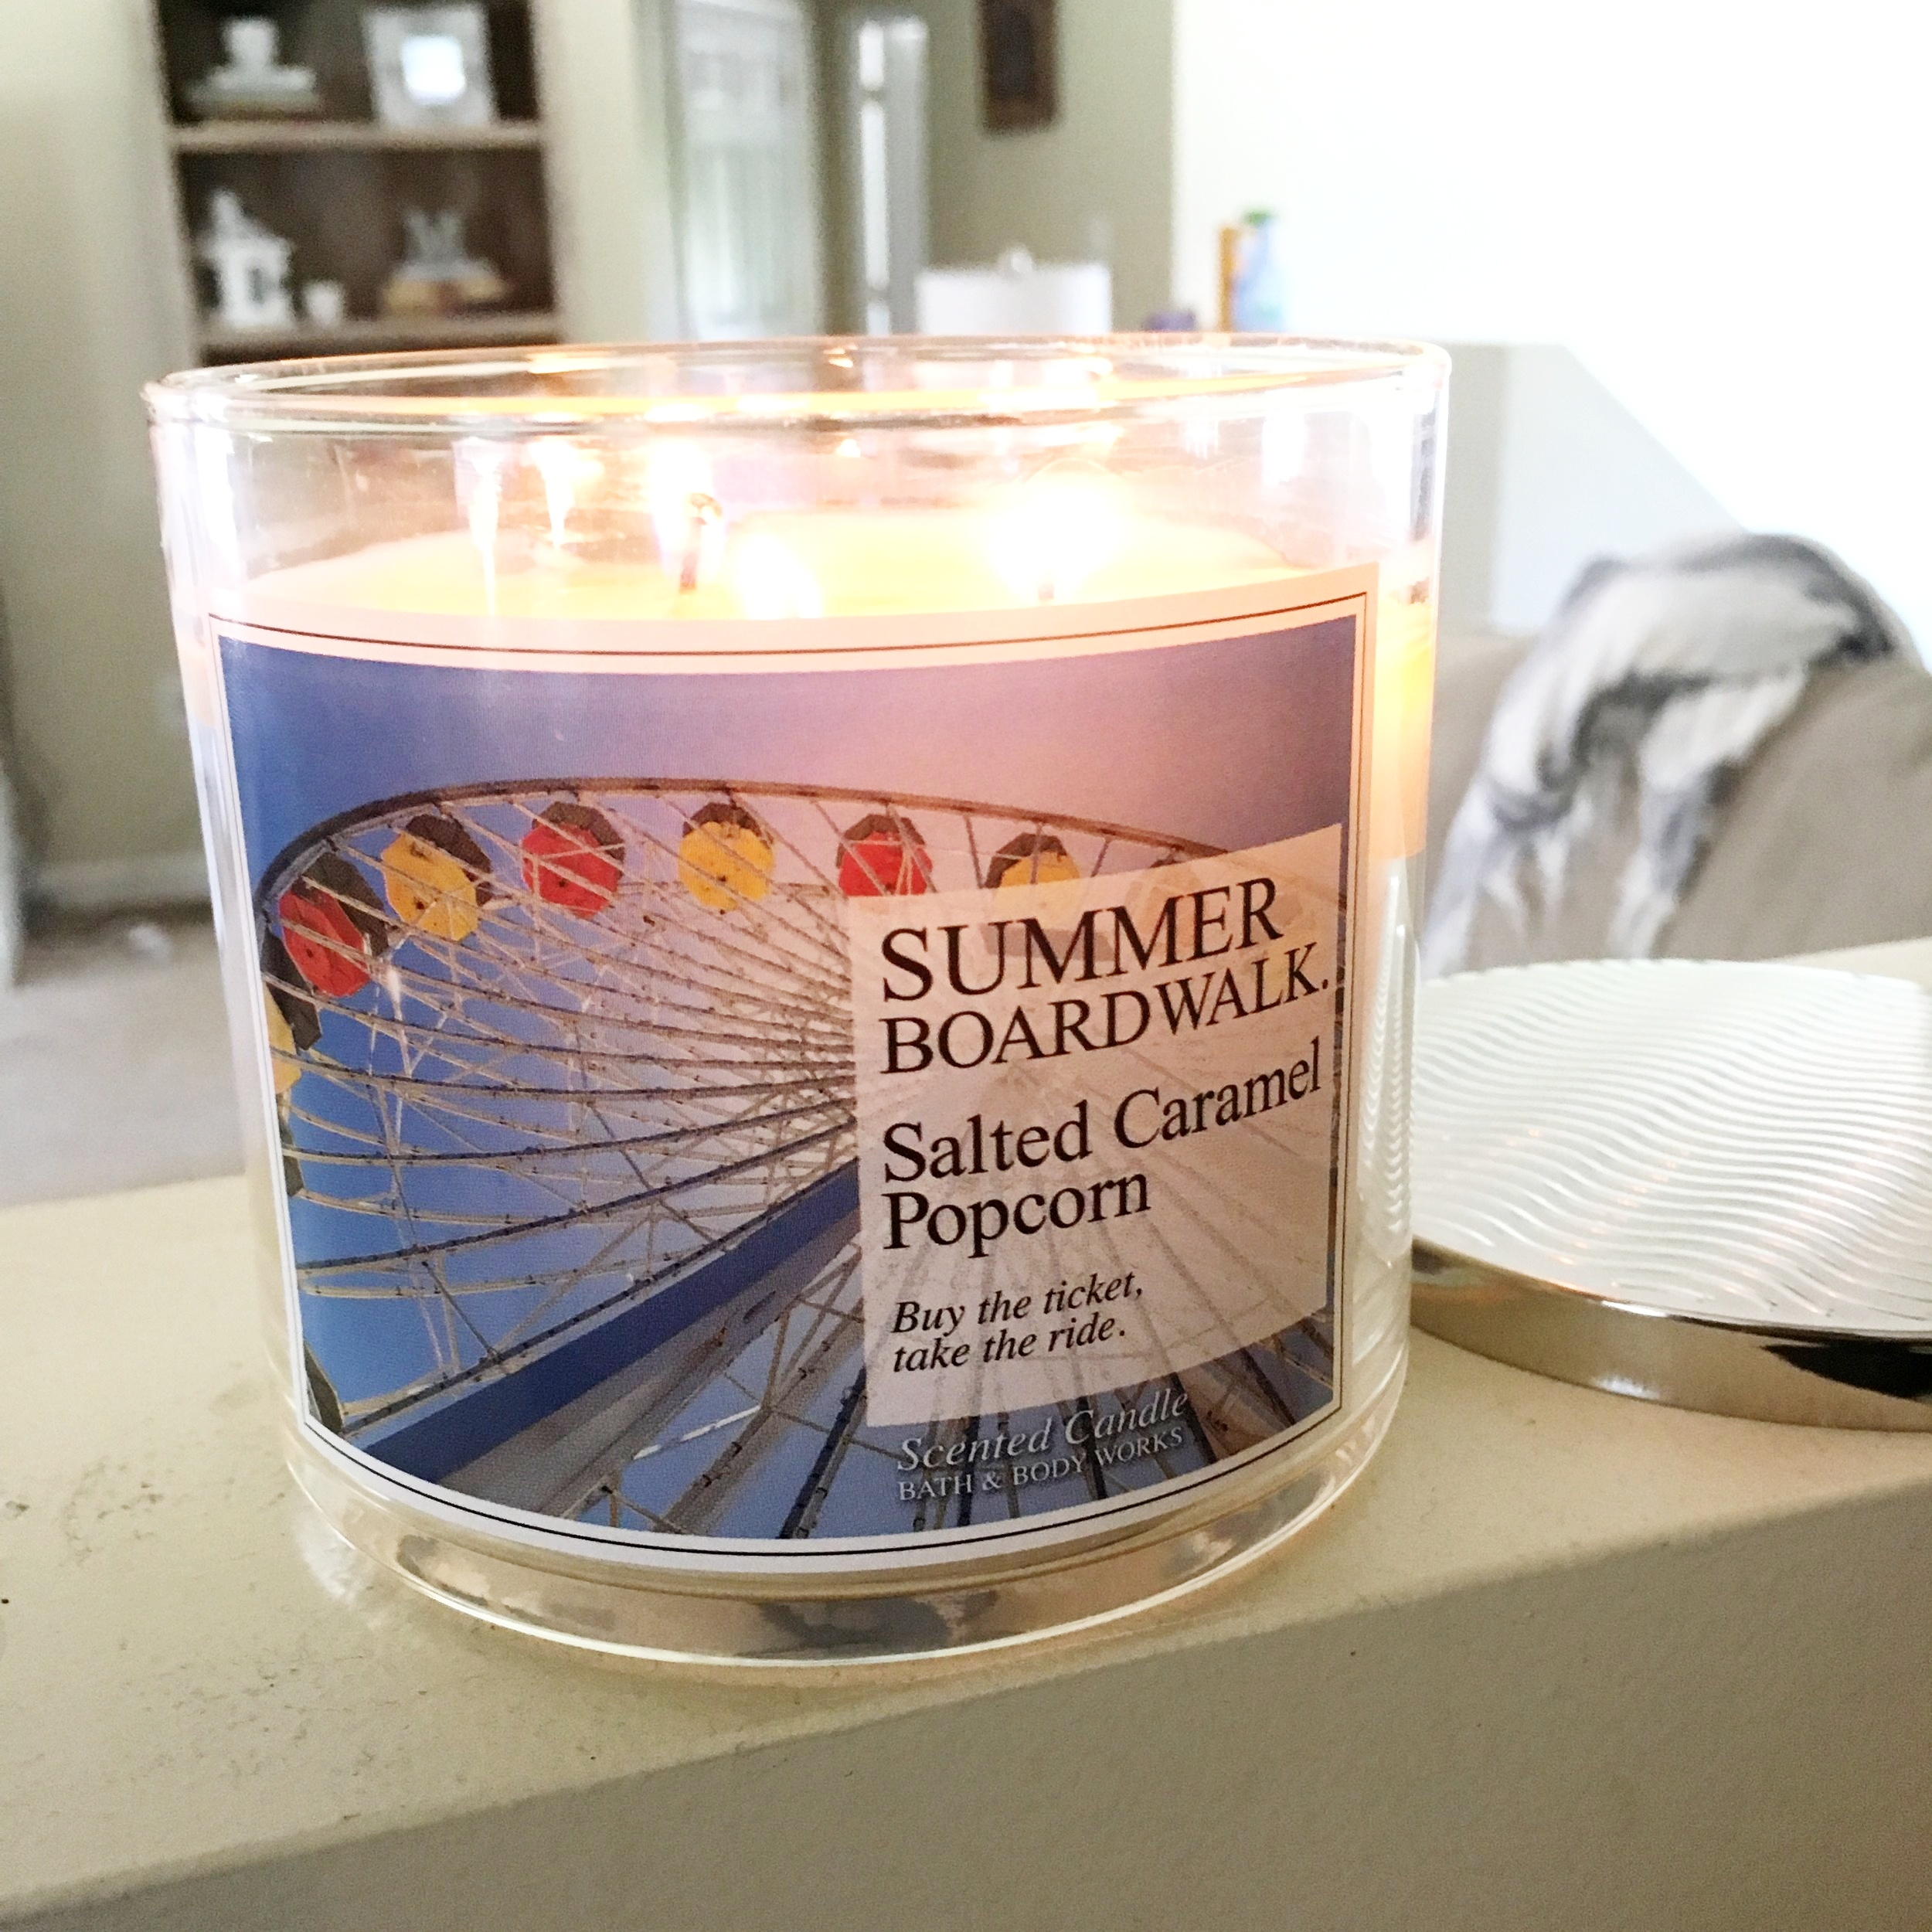 Bath & Body Works has great 3-wick candles.